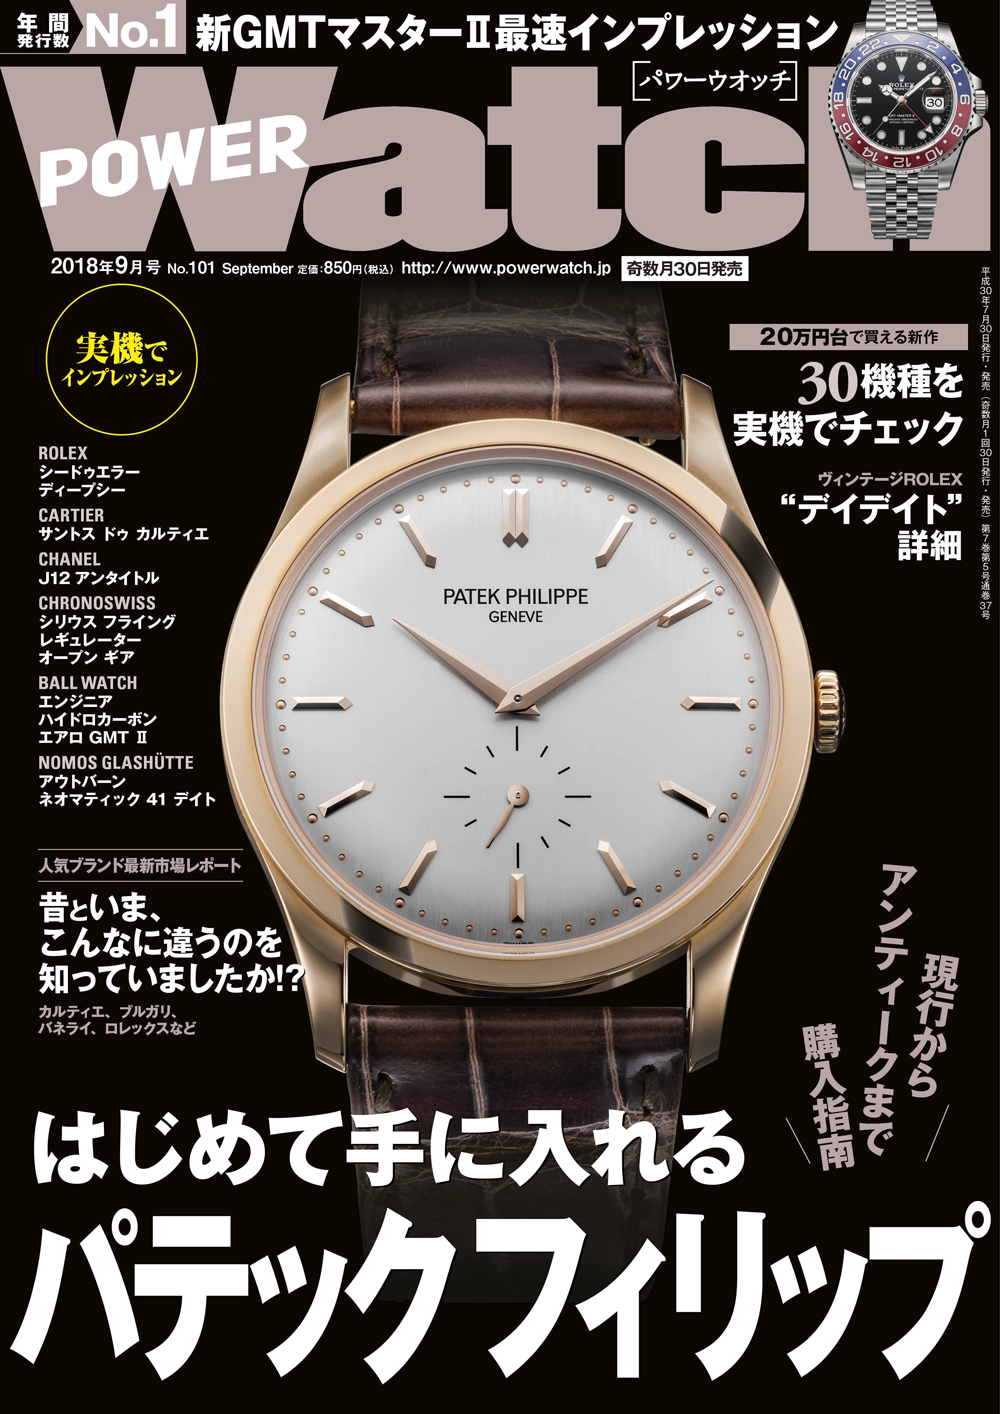 C's-Factory|電子書籍|POWER Watch No.101